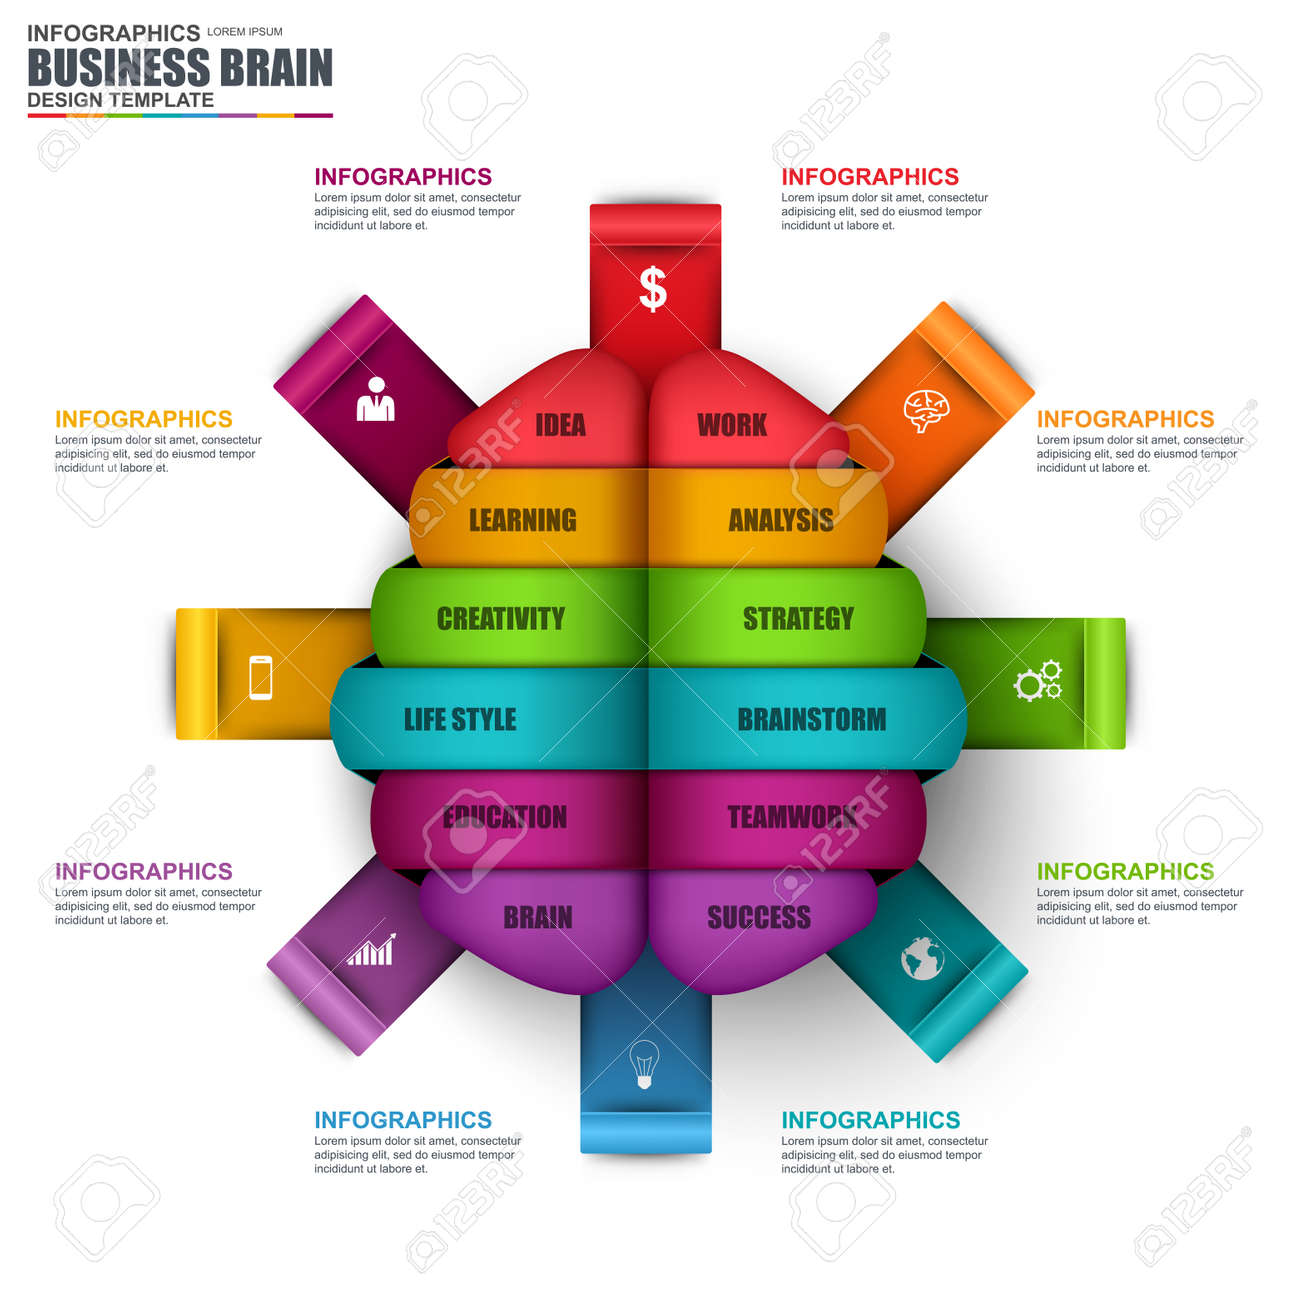 Infographic Business Brain Vector Design Template Can Be Used For Workflow Startup Successful